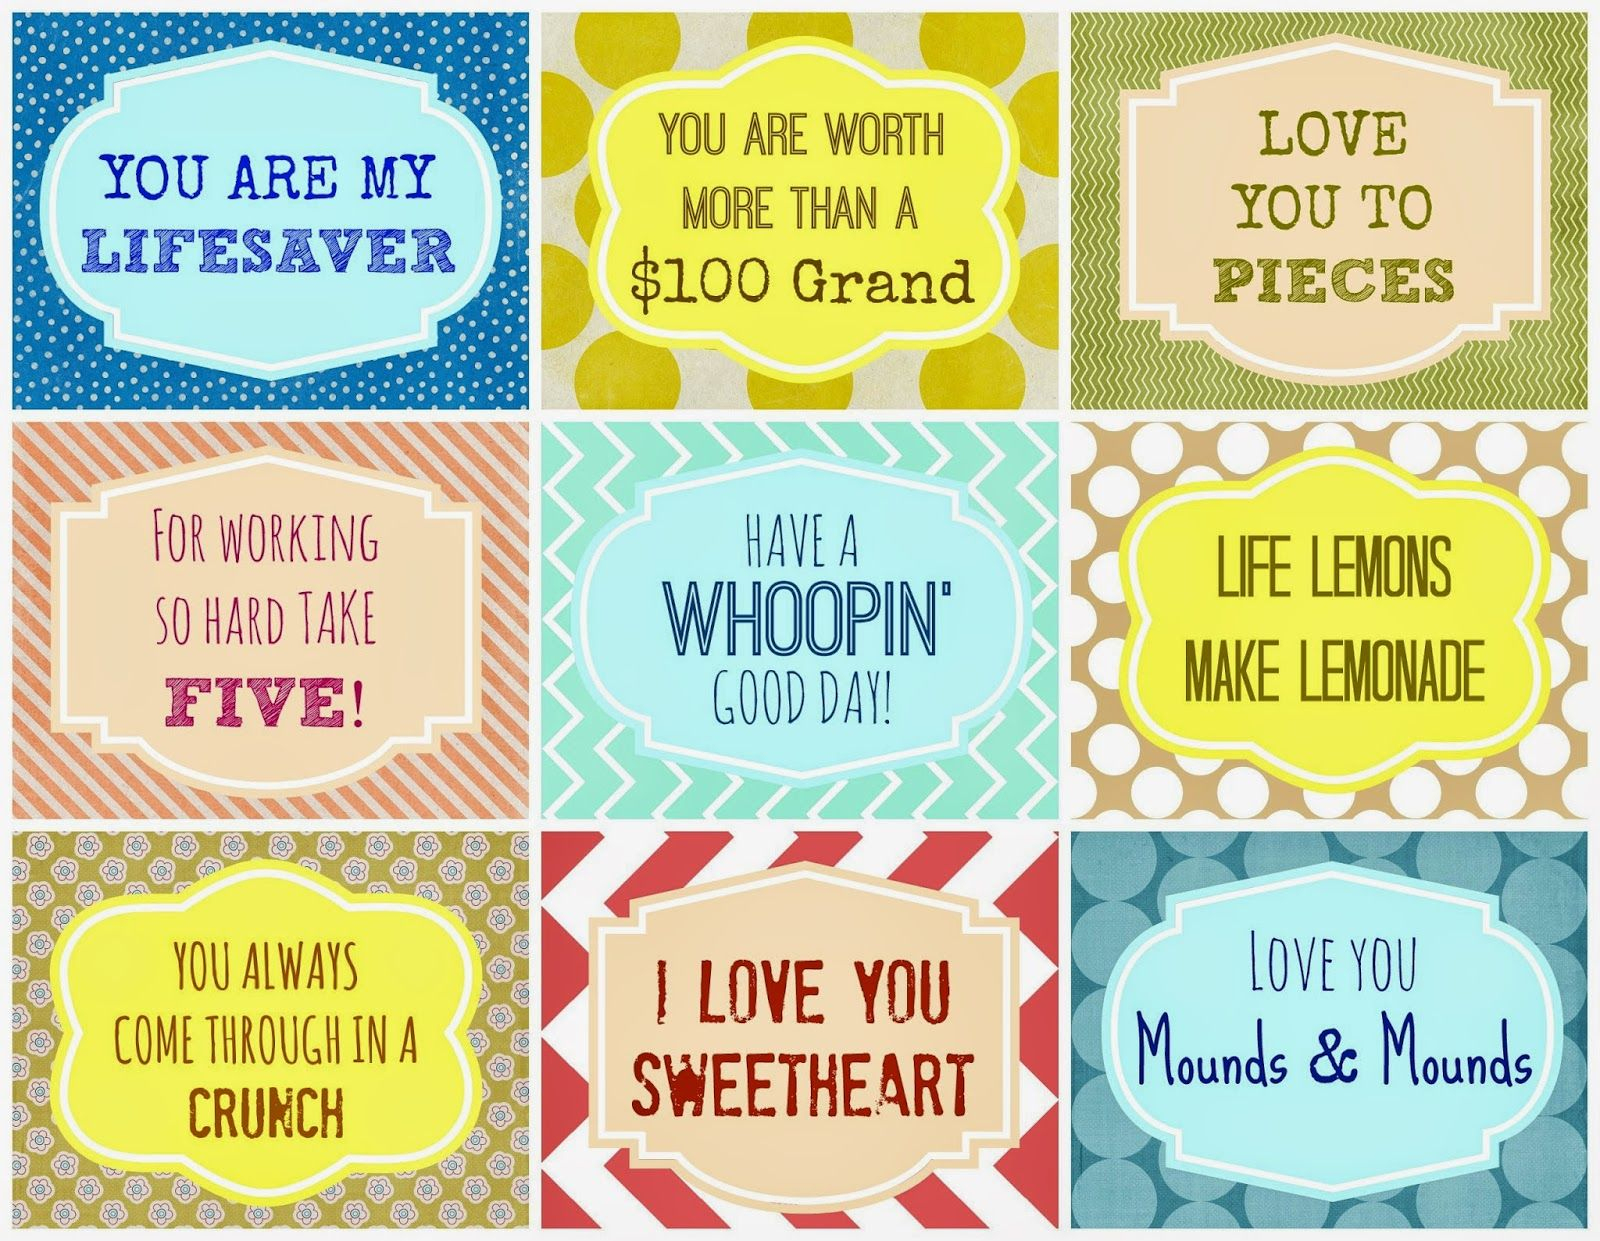 Candy Grams {Free Printable}   Spp   Pinterest   Candy Grams, Candy - Free Printable Lifesaver Tags